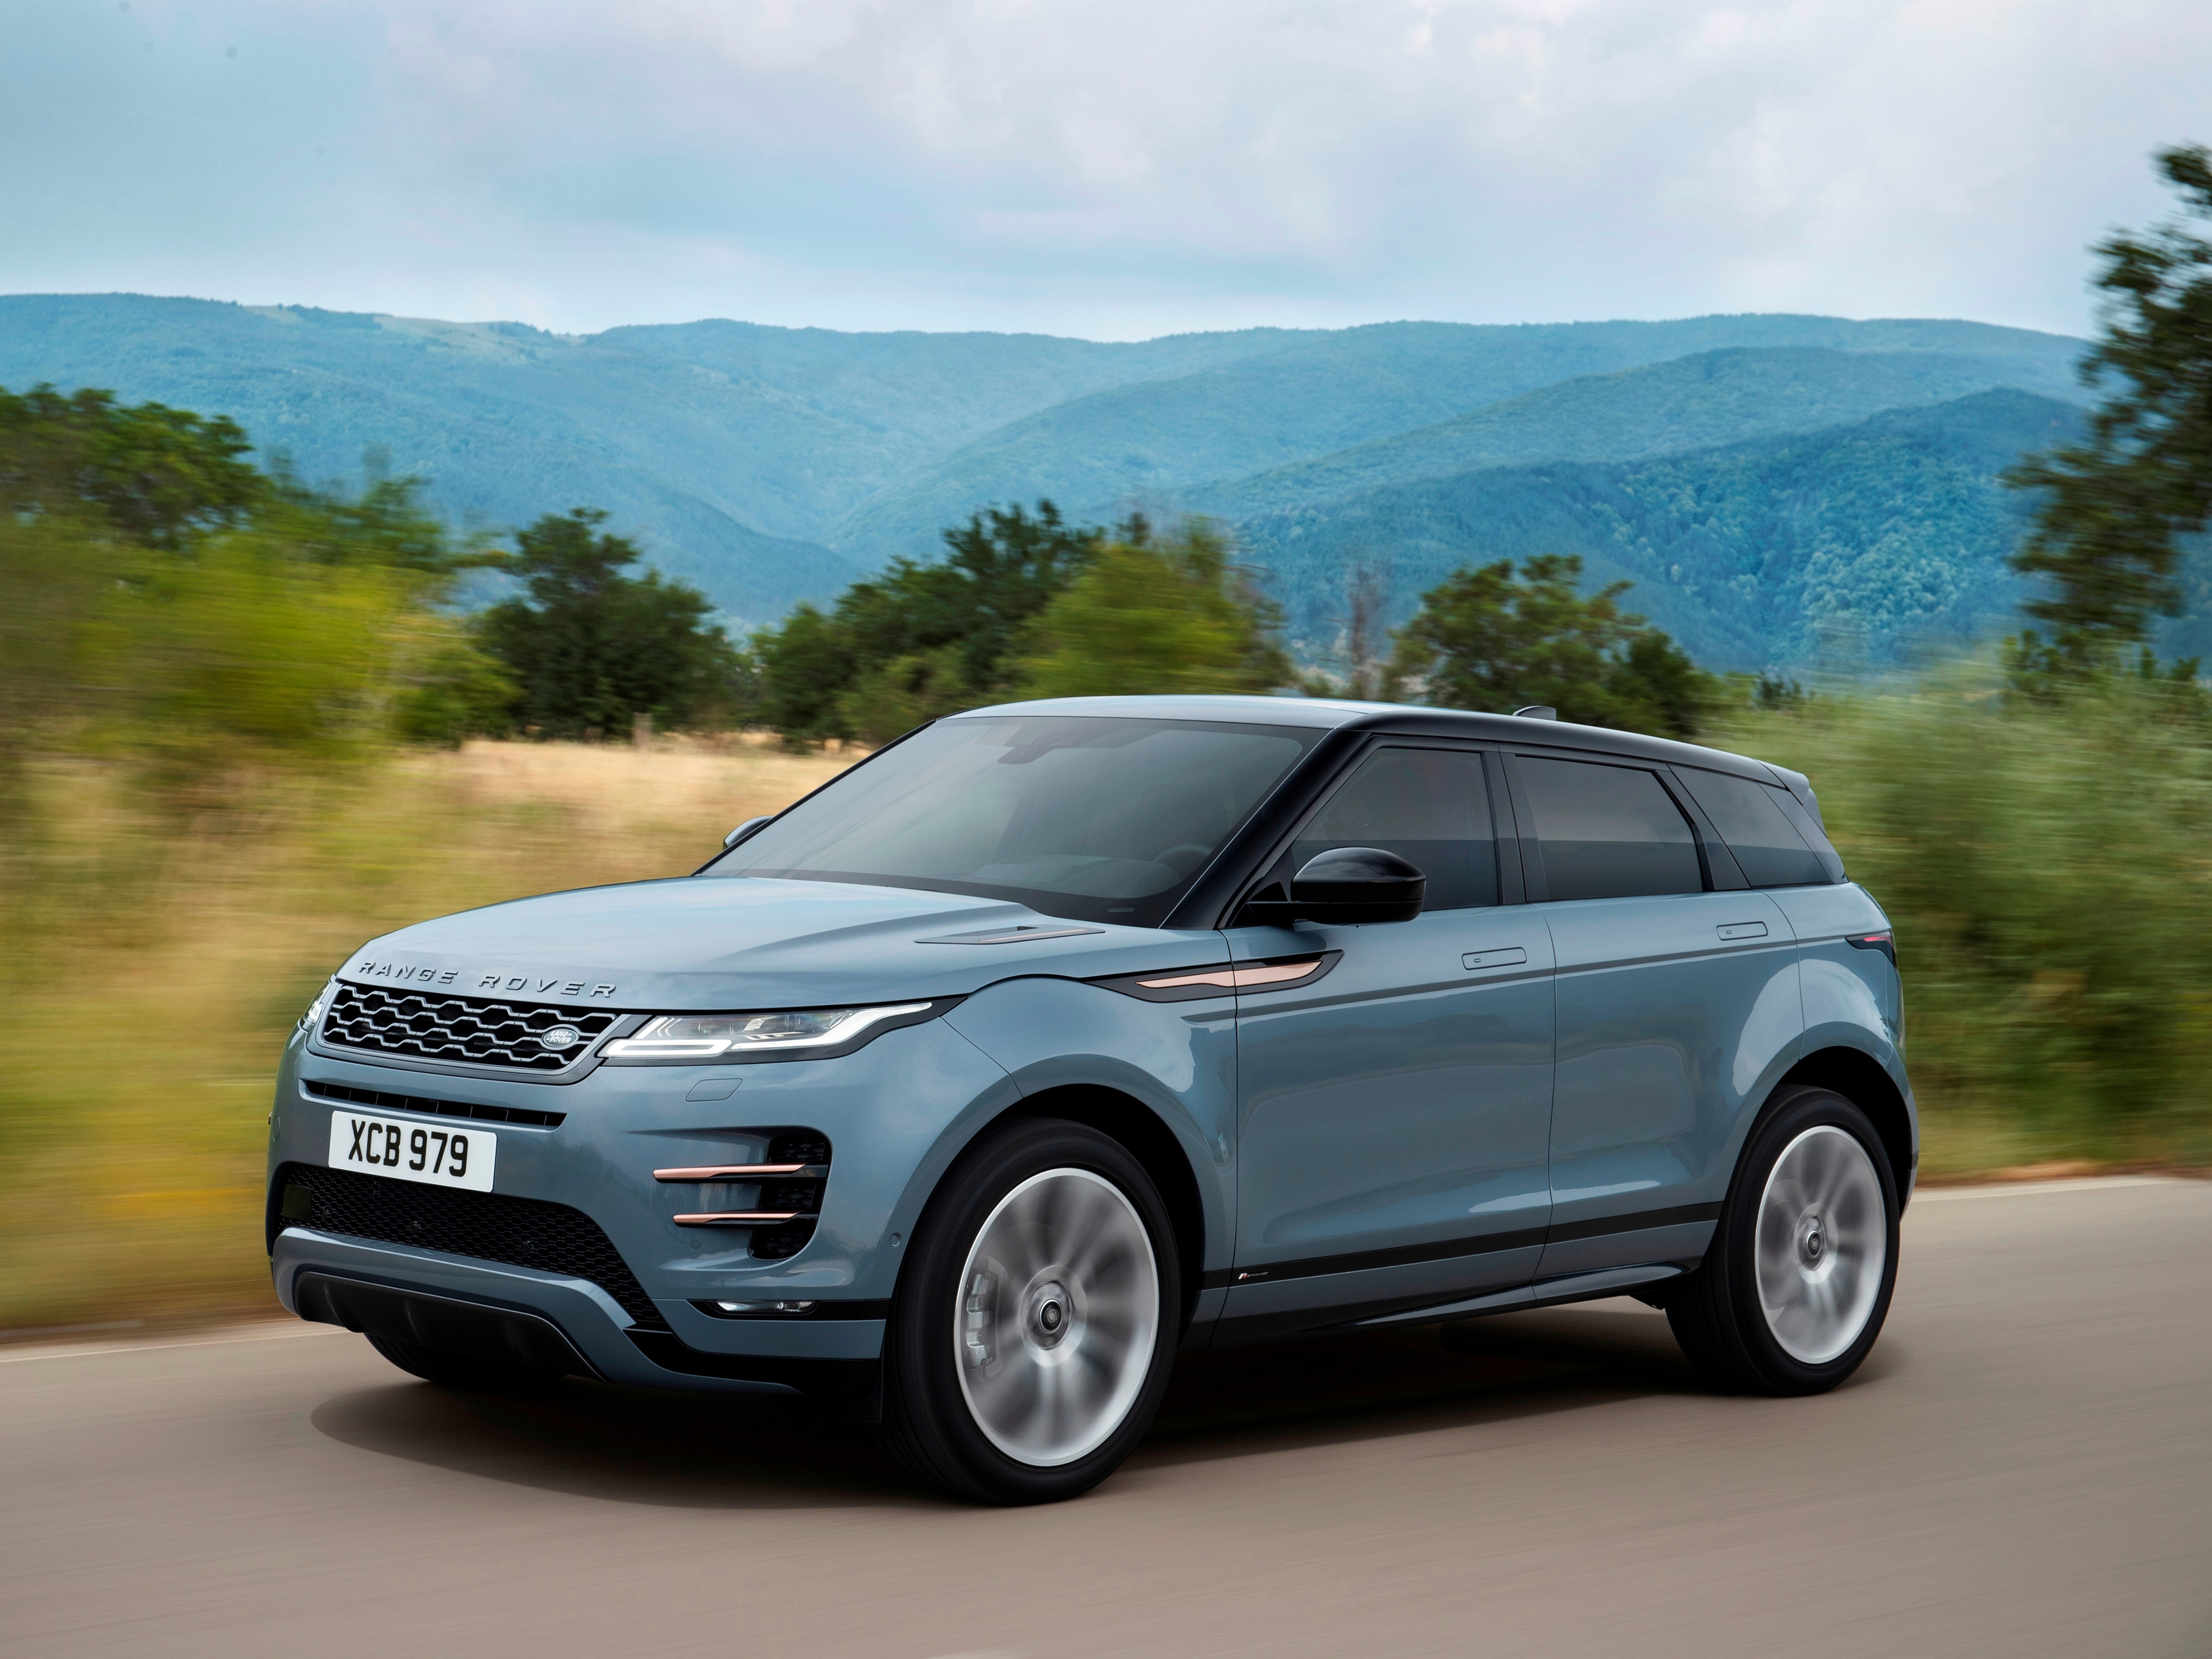 19 All New 2020 Range Rover Evoque Research New